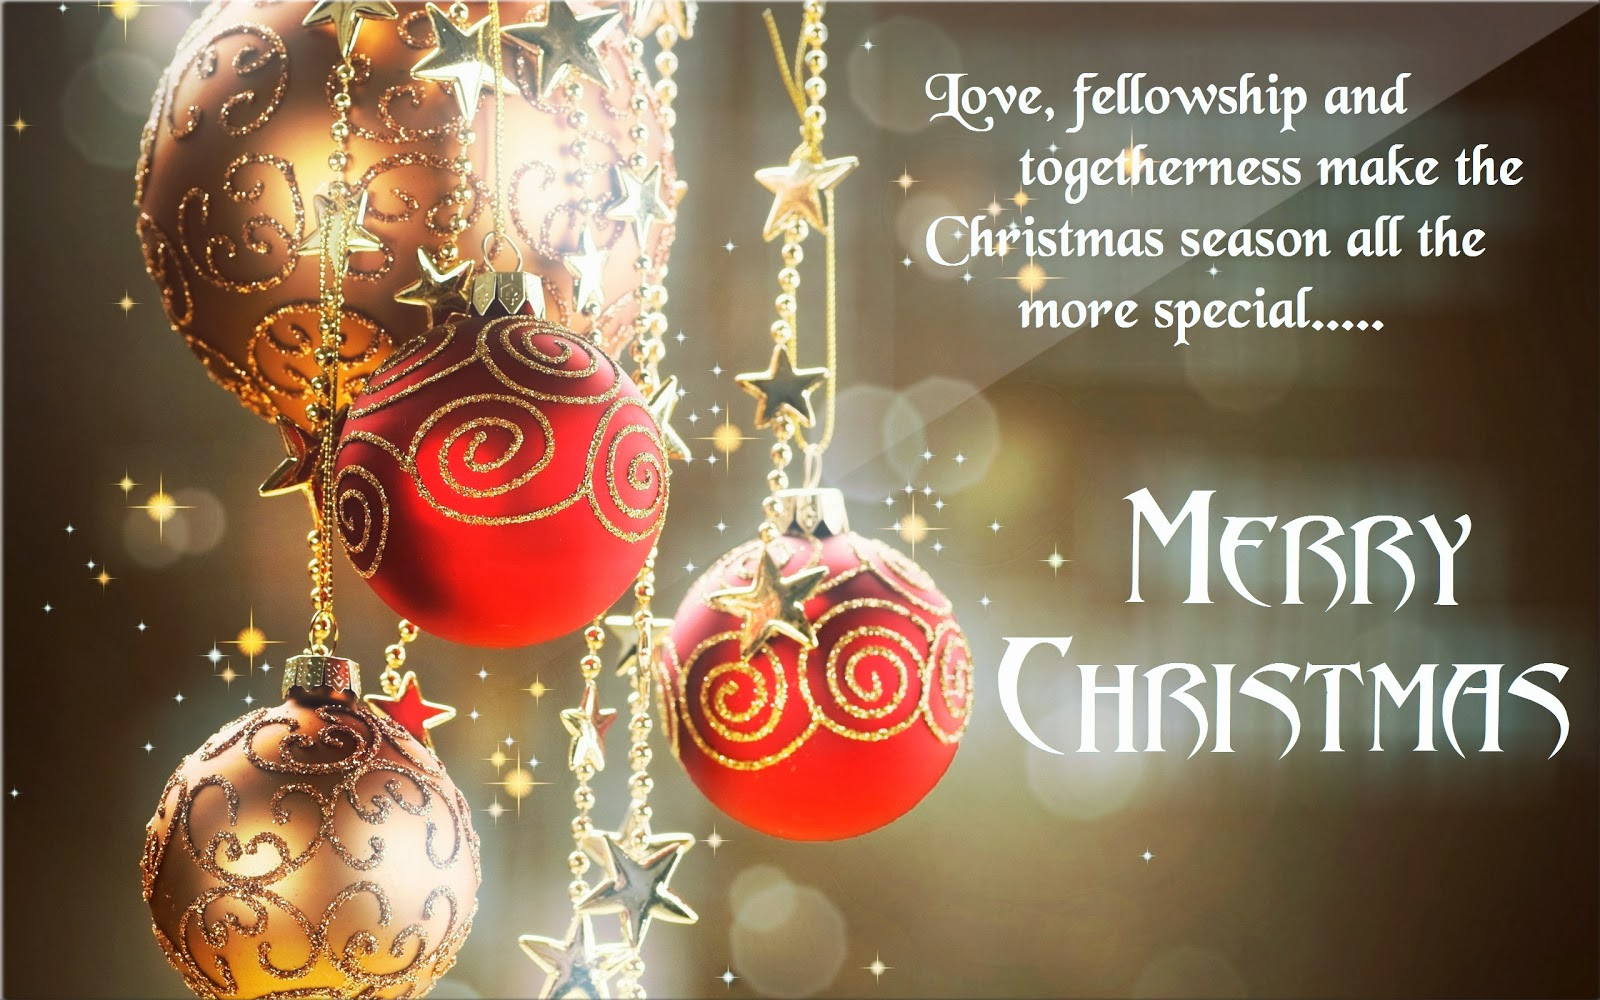 70+ Happy Merry Christmas Facebook And Whatsapp Status And Messages 2017 ~  Merry Christmas 2017 And Happy New Year Images, Pictures, Photos, Pics,  Messages, ...